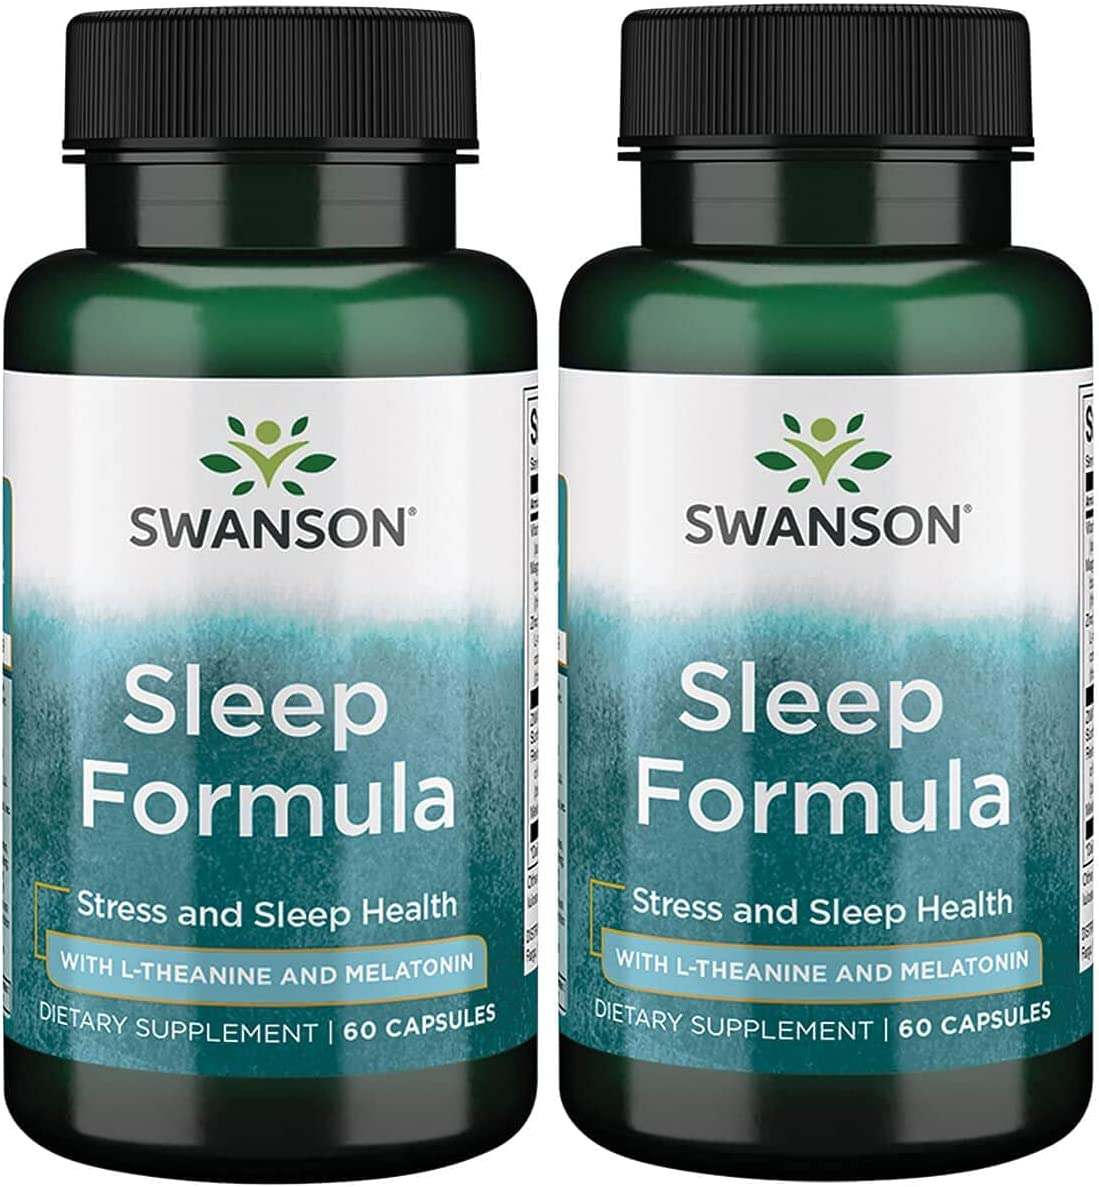 Swanson Sleep Formula 60 Pack Capsules 2 El Complete Free Shipping Paso Mall